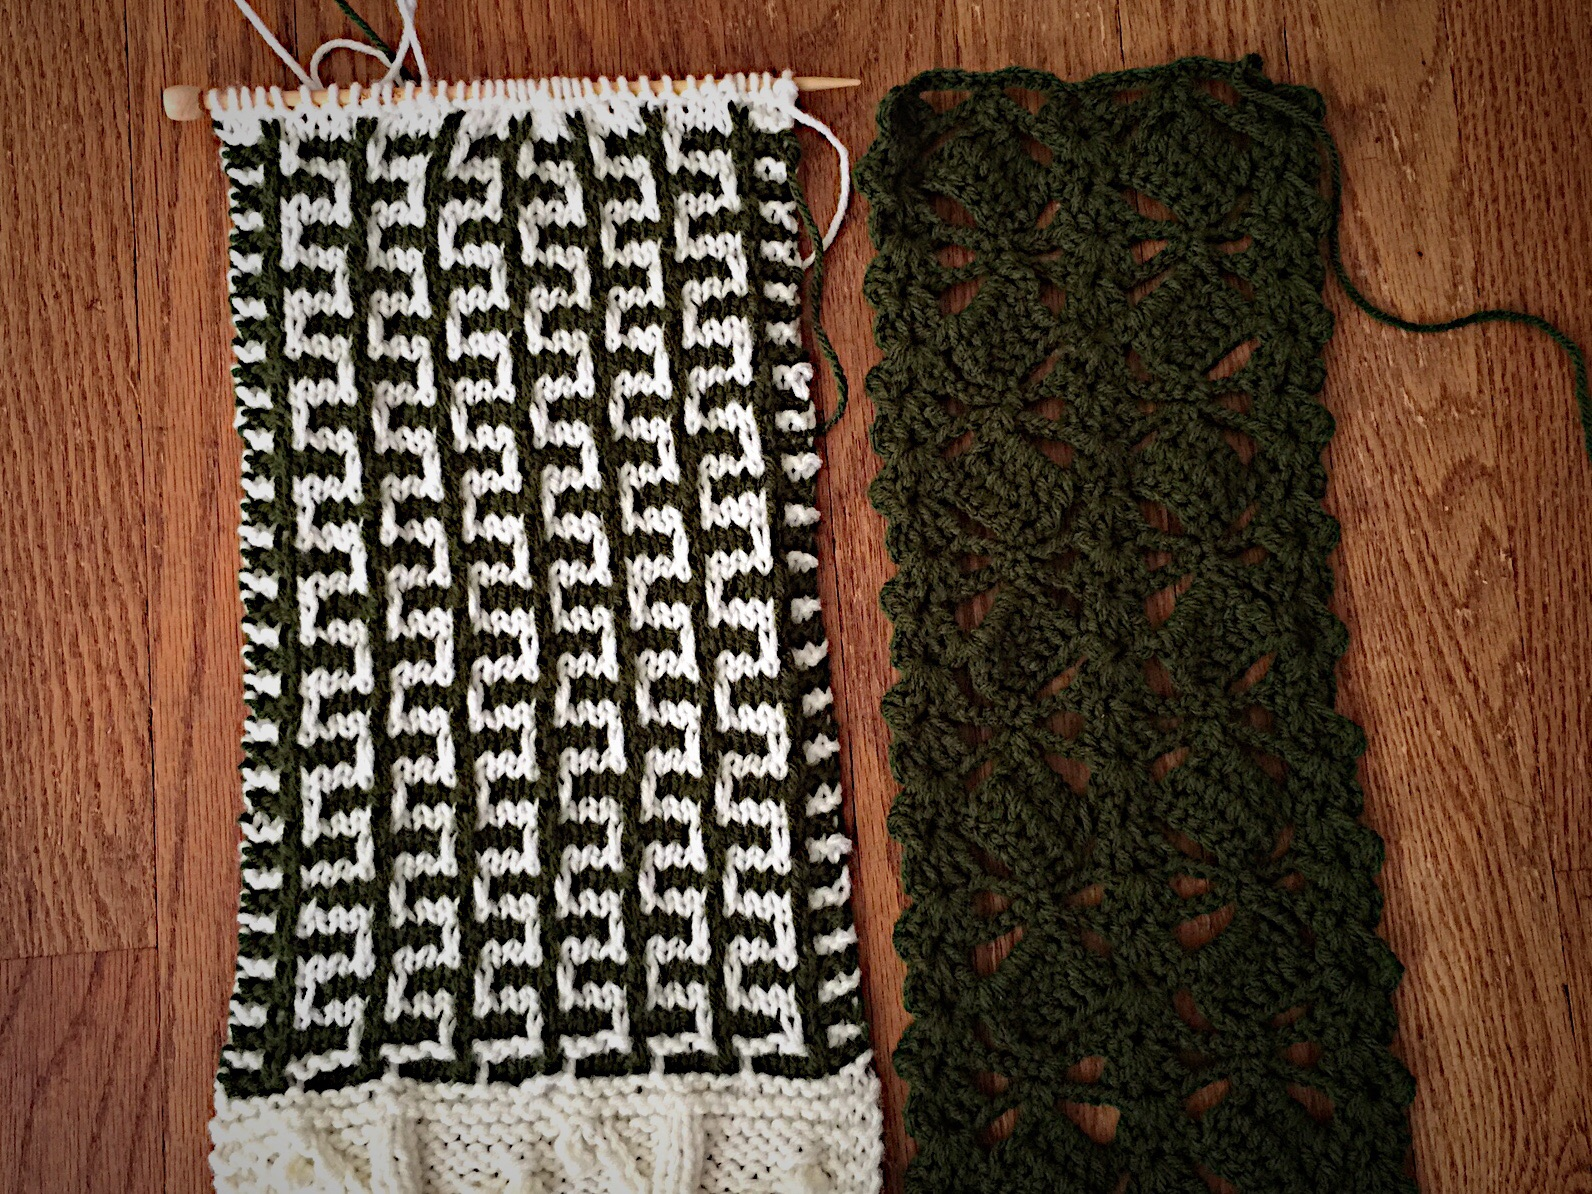 The Russian Mosaic Knit Stitch (left) and the Slanted Blocks Crochet Stitch (right).